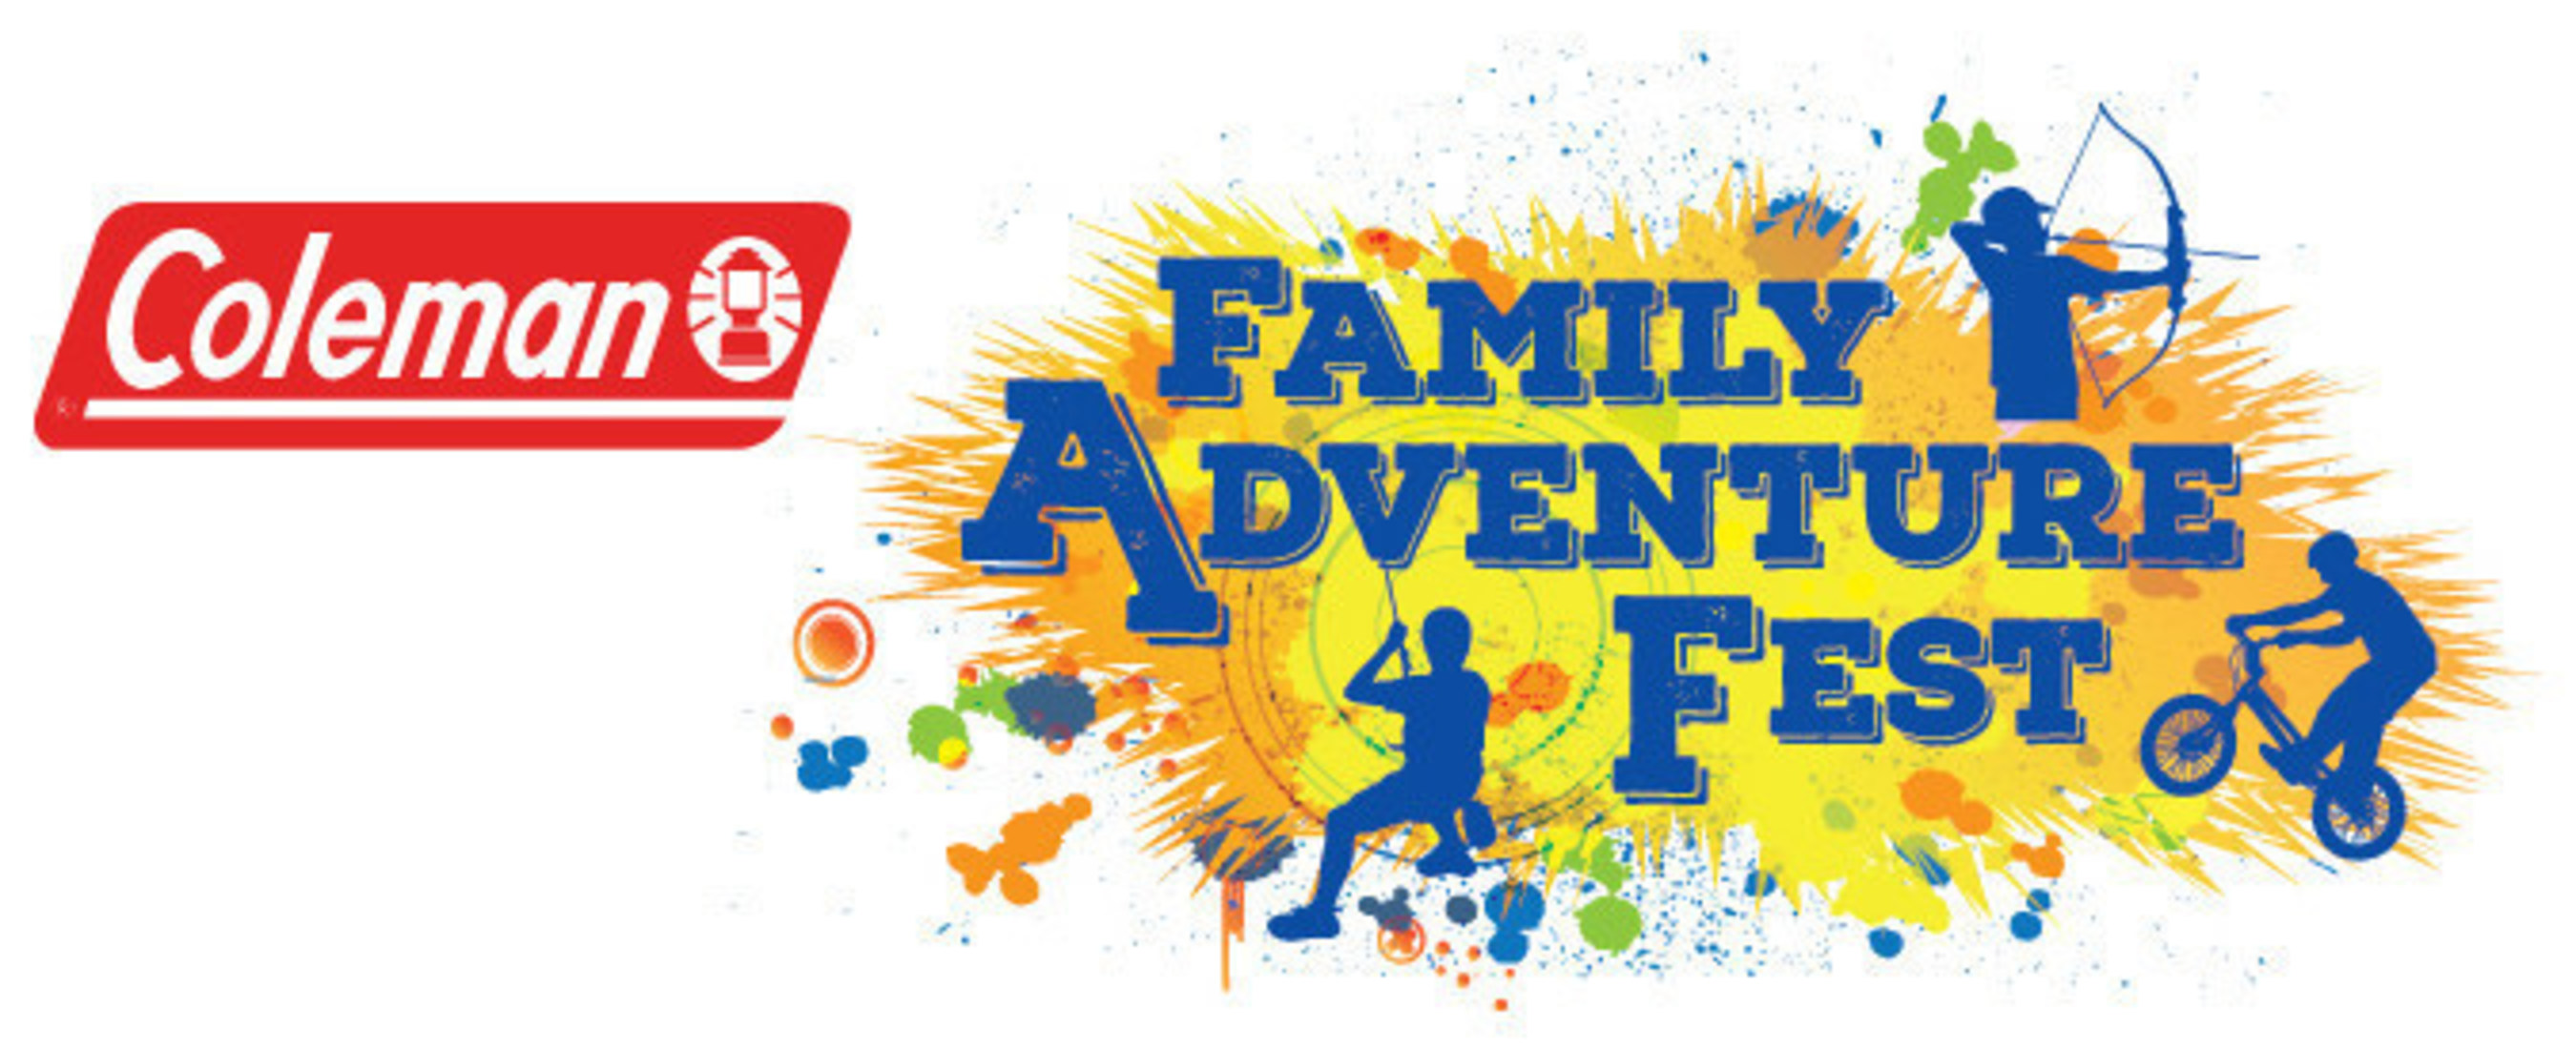 The Coleman Family AdventureFest is coming to Dallas/Fort Worth August 21-23. www.FamilyAdventureFest.com